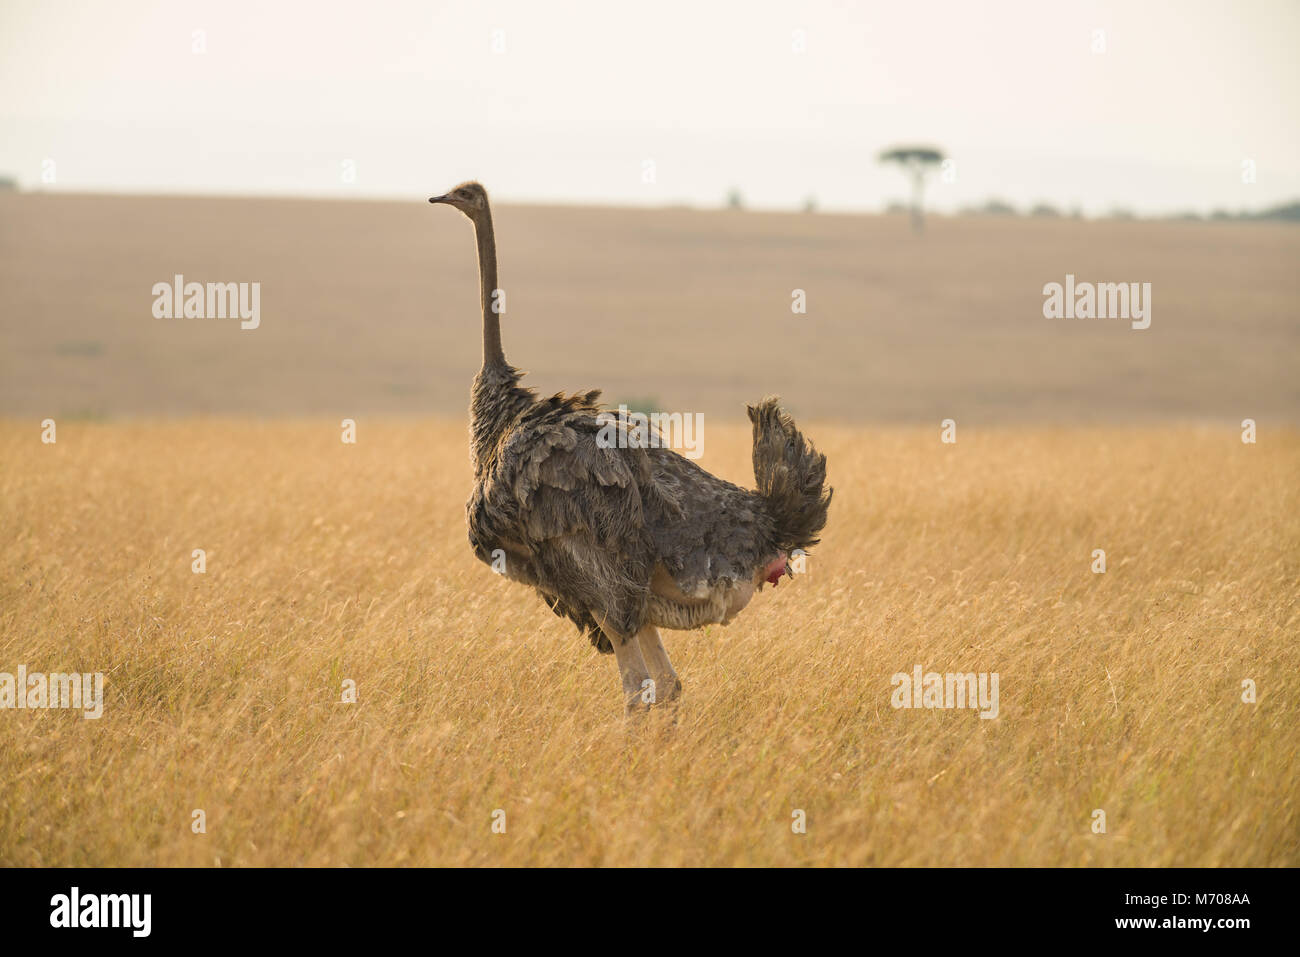 A female ostrich or common ostrich (Struthio camelus) standing in dry grass on a hazy sunny day, Masai Mara, Kenya - Stock Image